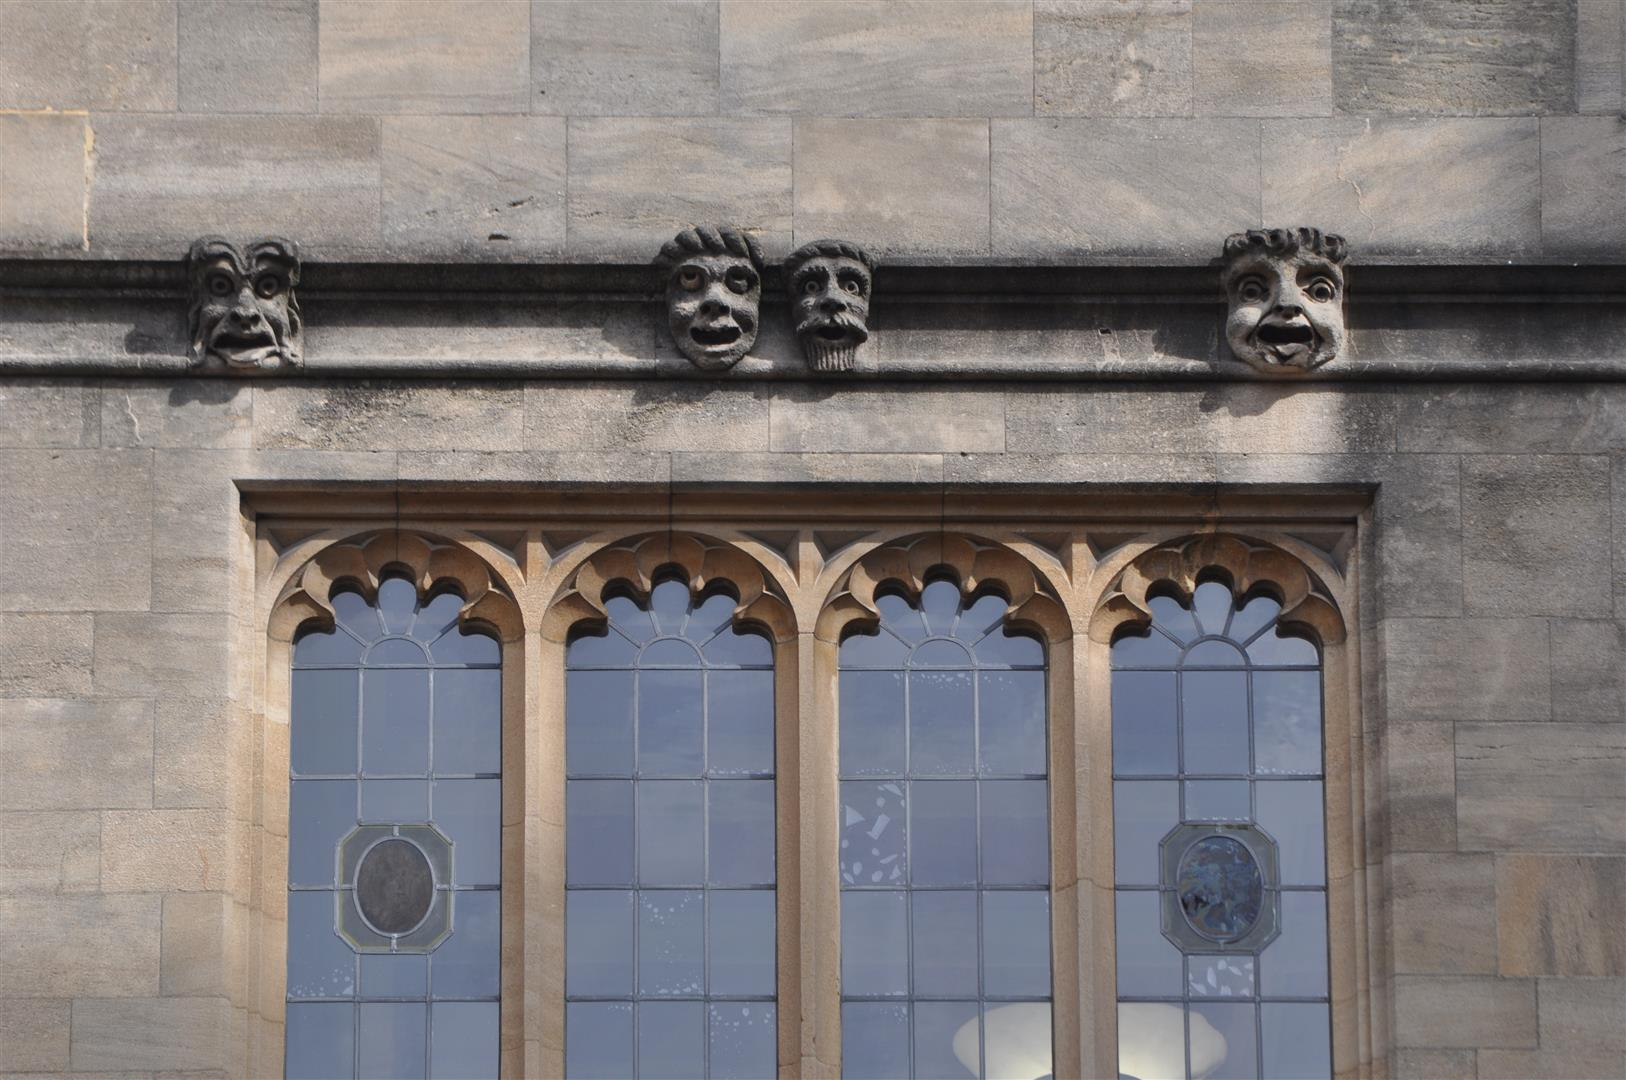 Detail 1, Bodleian Library, Oxford